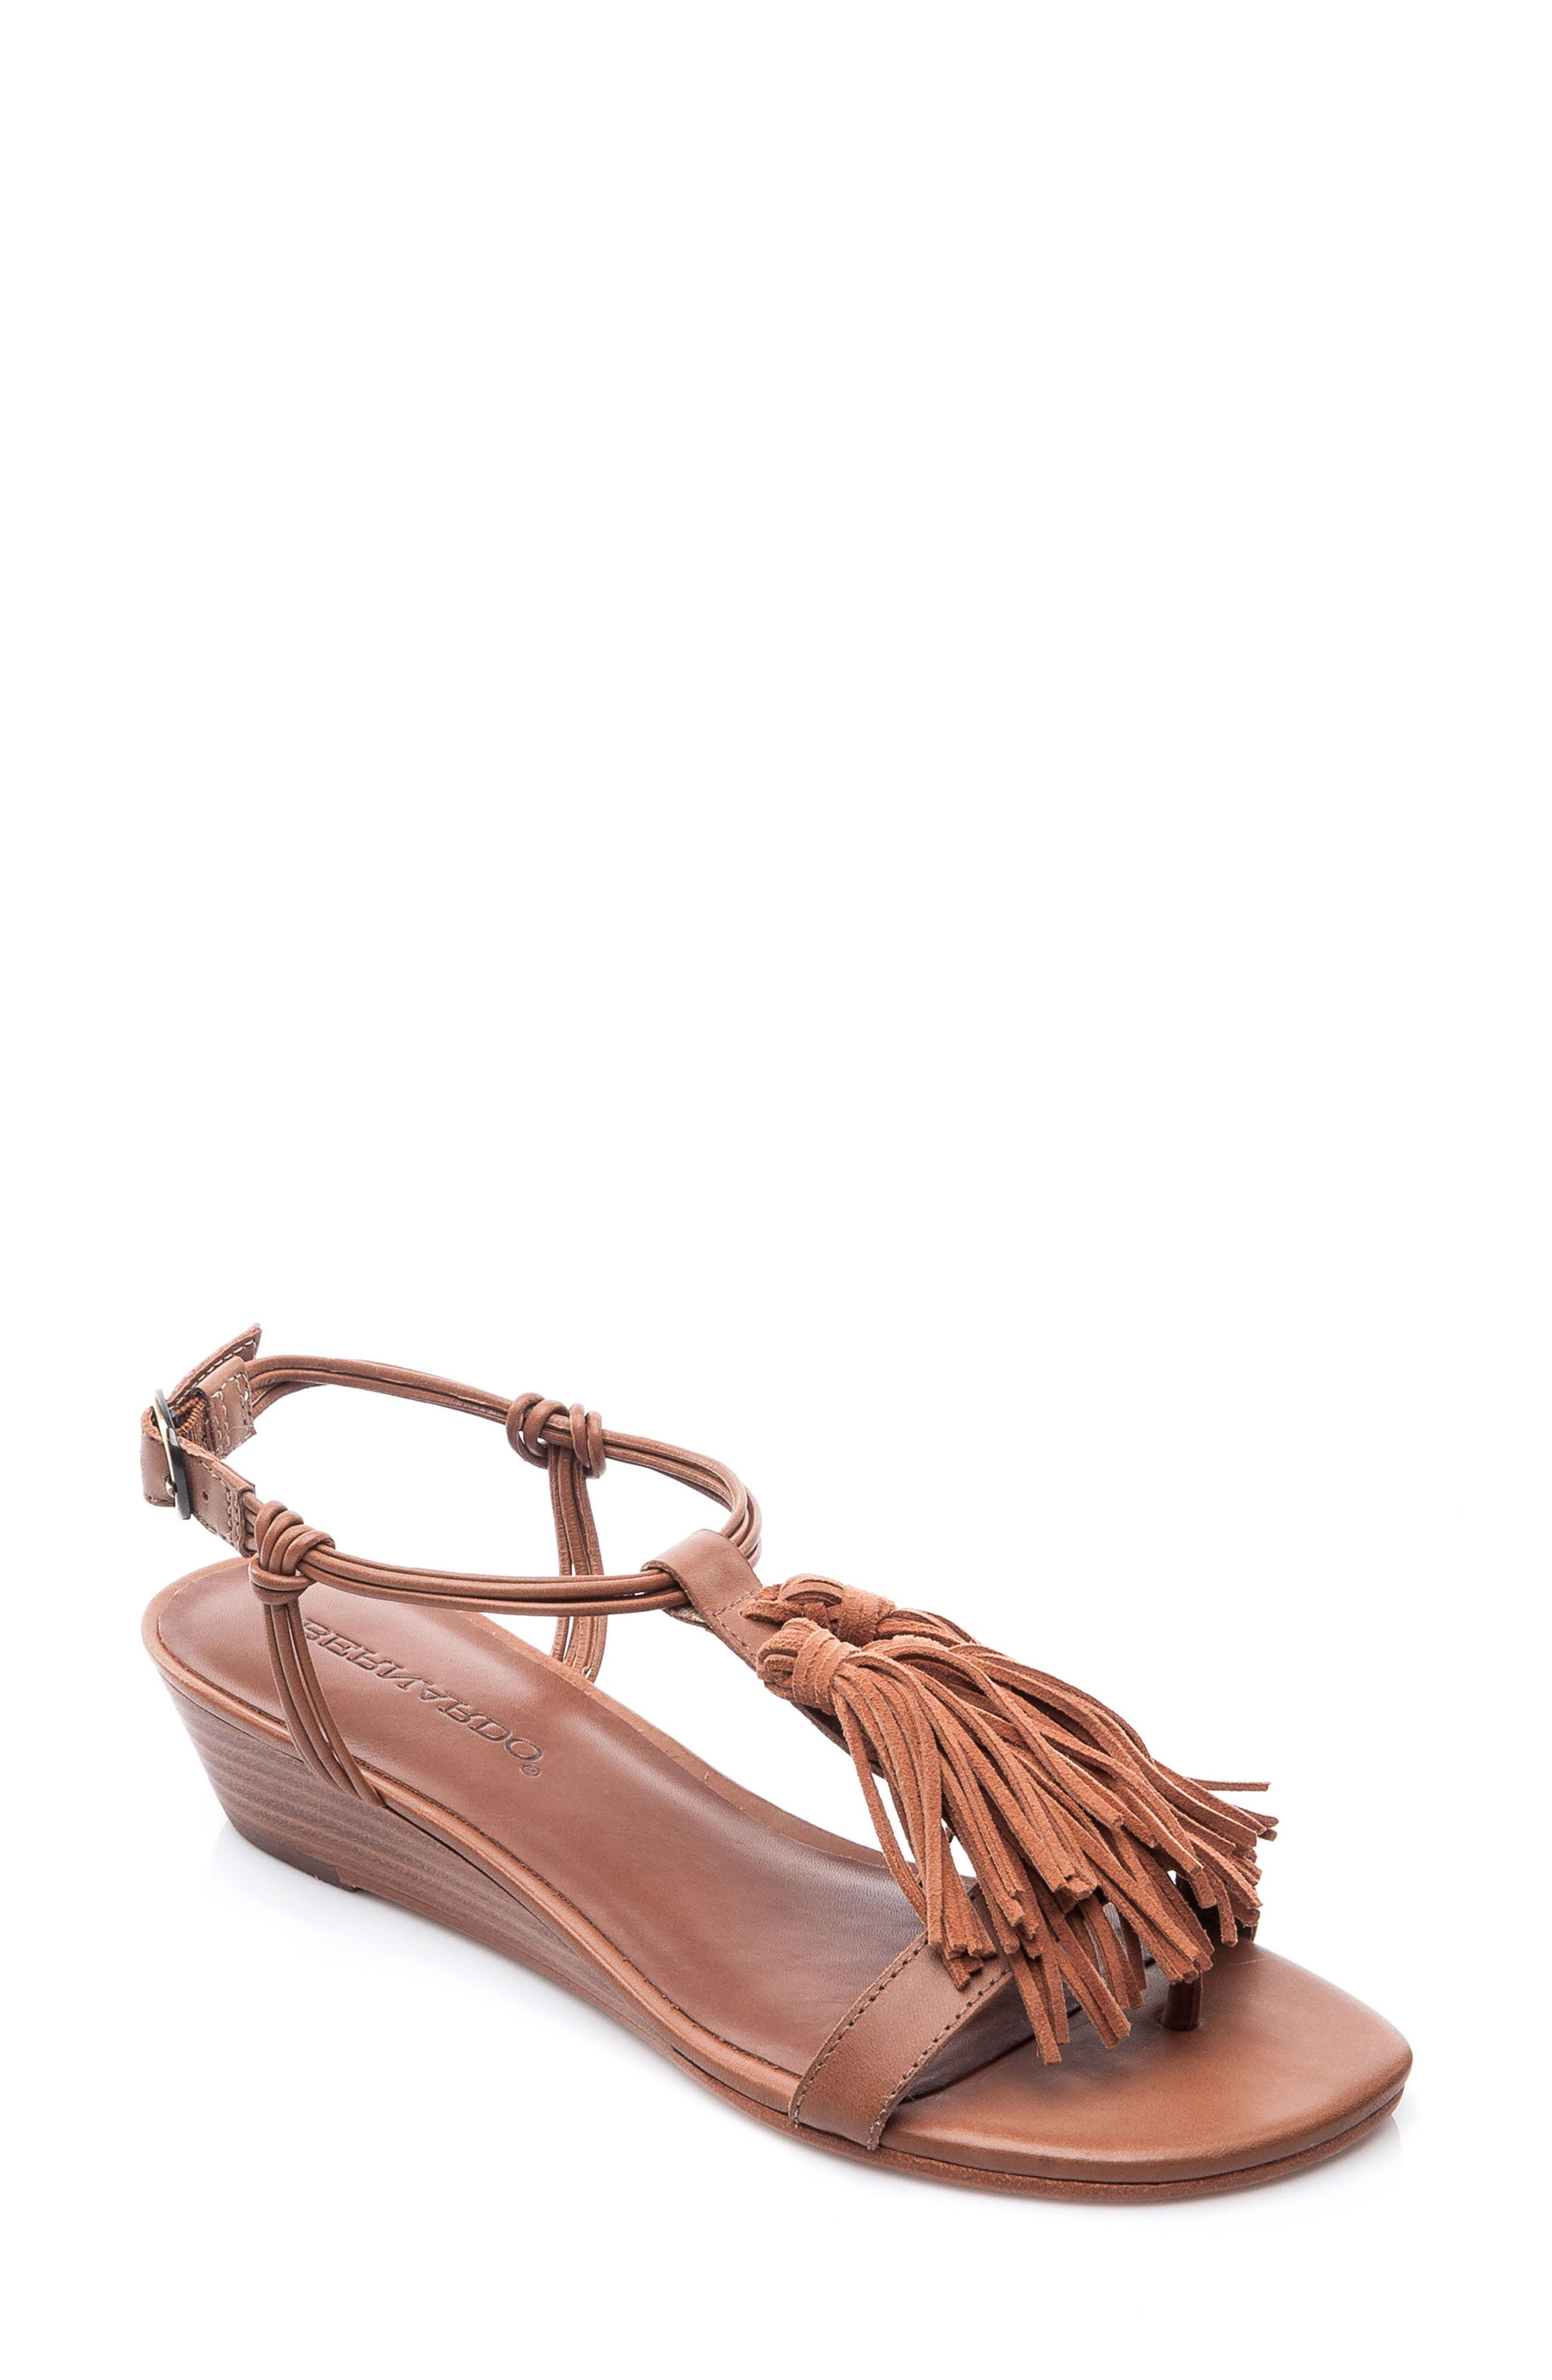 Footwear Court Fringe Leather Sandal,                             Main thumbnail 1, color,                             Luggage Leather